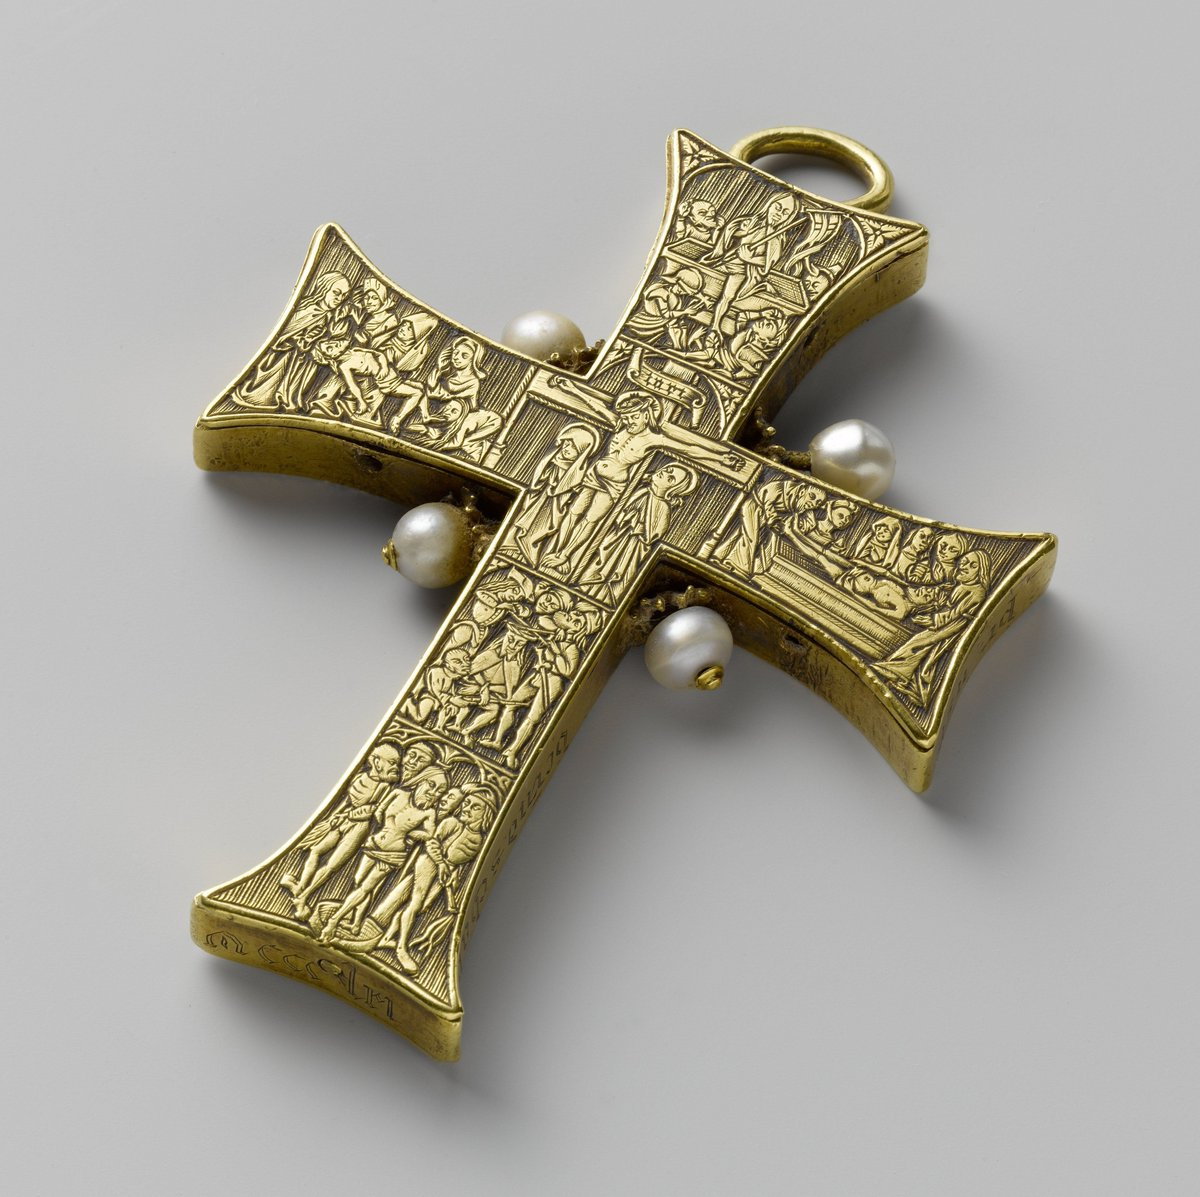 """Here's a stunning pectoral cross c.1480, it probably belonged to a German cleric. Later it was owned by 11 times mayor of #Amsterdam Gerard Schaep, d.1666. On the basis of the engraved """"Bernd Schaph"""", he mistakenly believed that he had an ancestor's cross. pic.twitter.com/lPpVNPgSYj"""